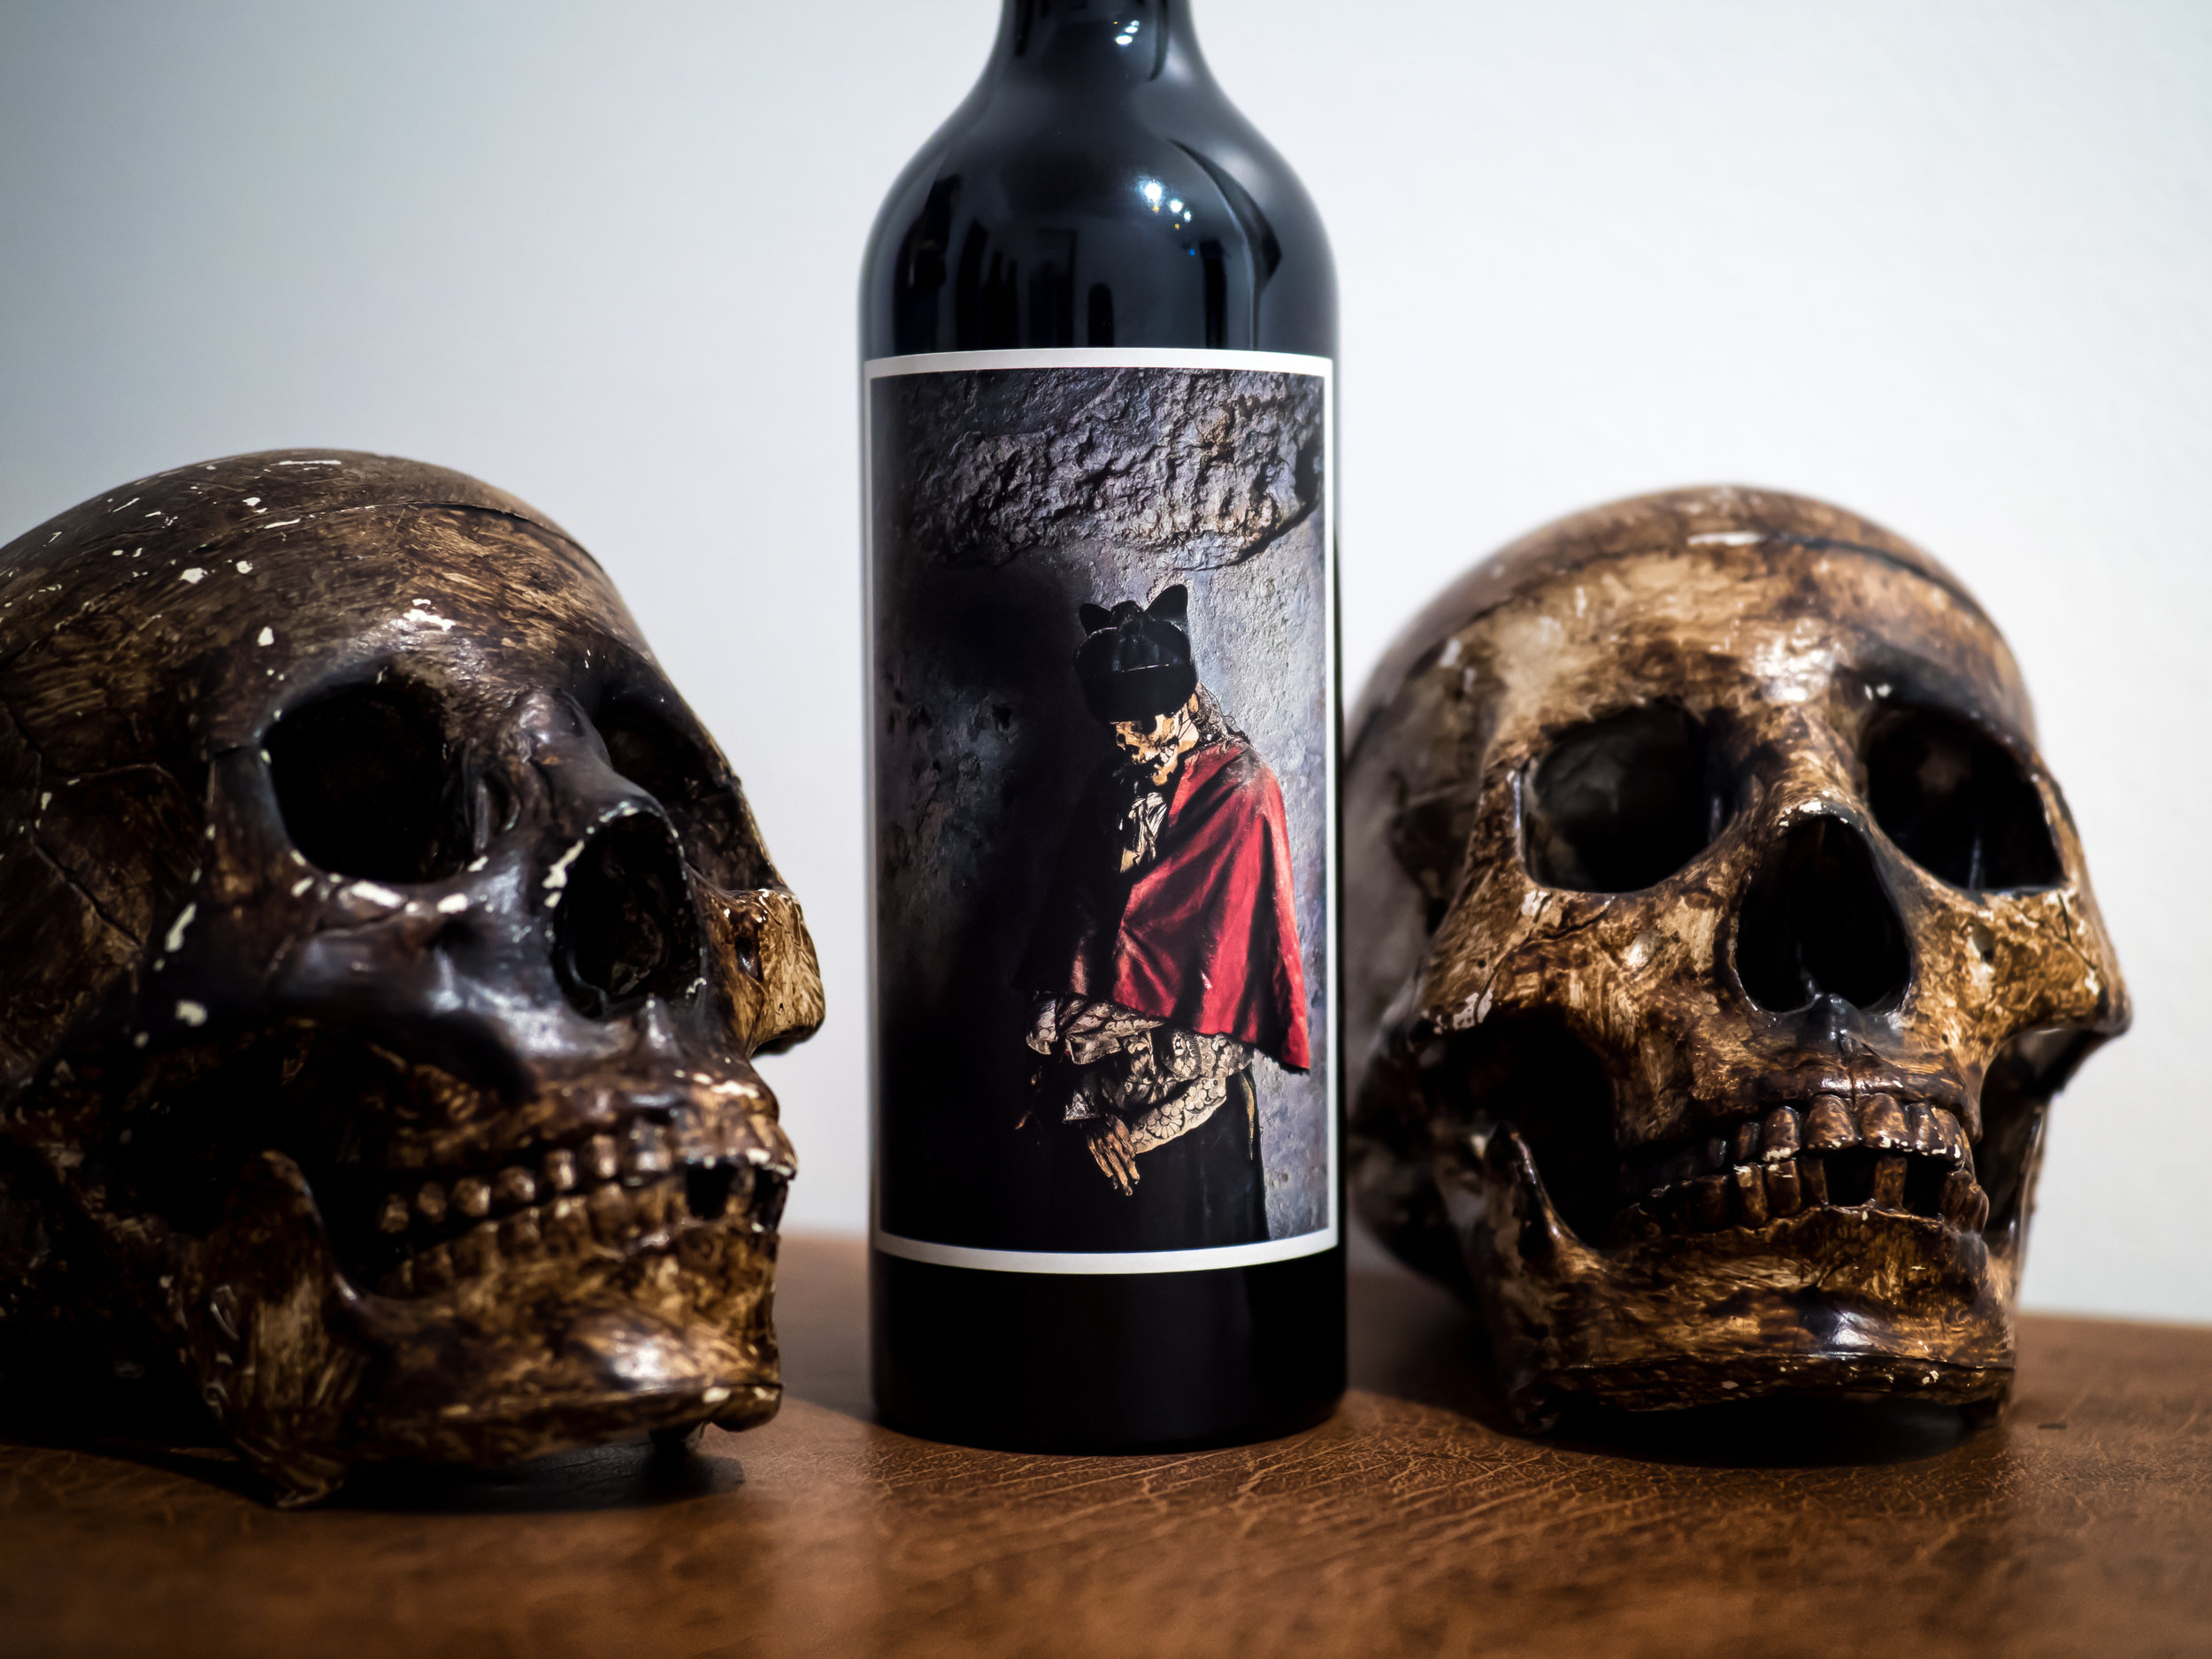 Musings by the Glass - Spooky Wines with Jorge Garcia - Spooky Wines Lineup - 2014 Orin Swift Palermo Cabernet Sauvignon Napa Valley California